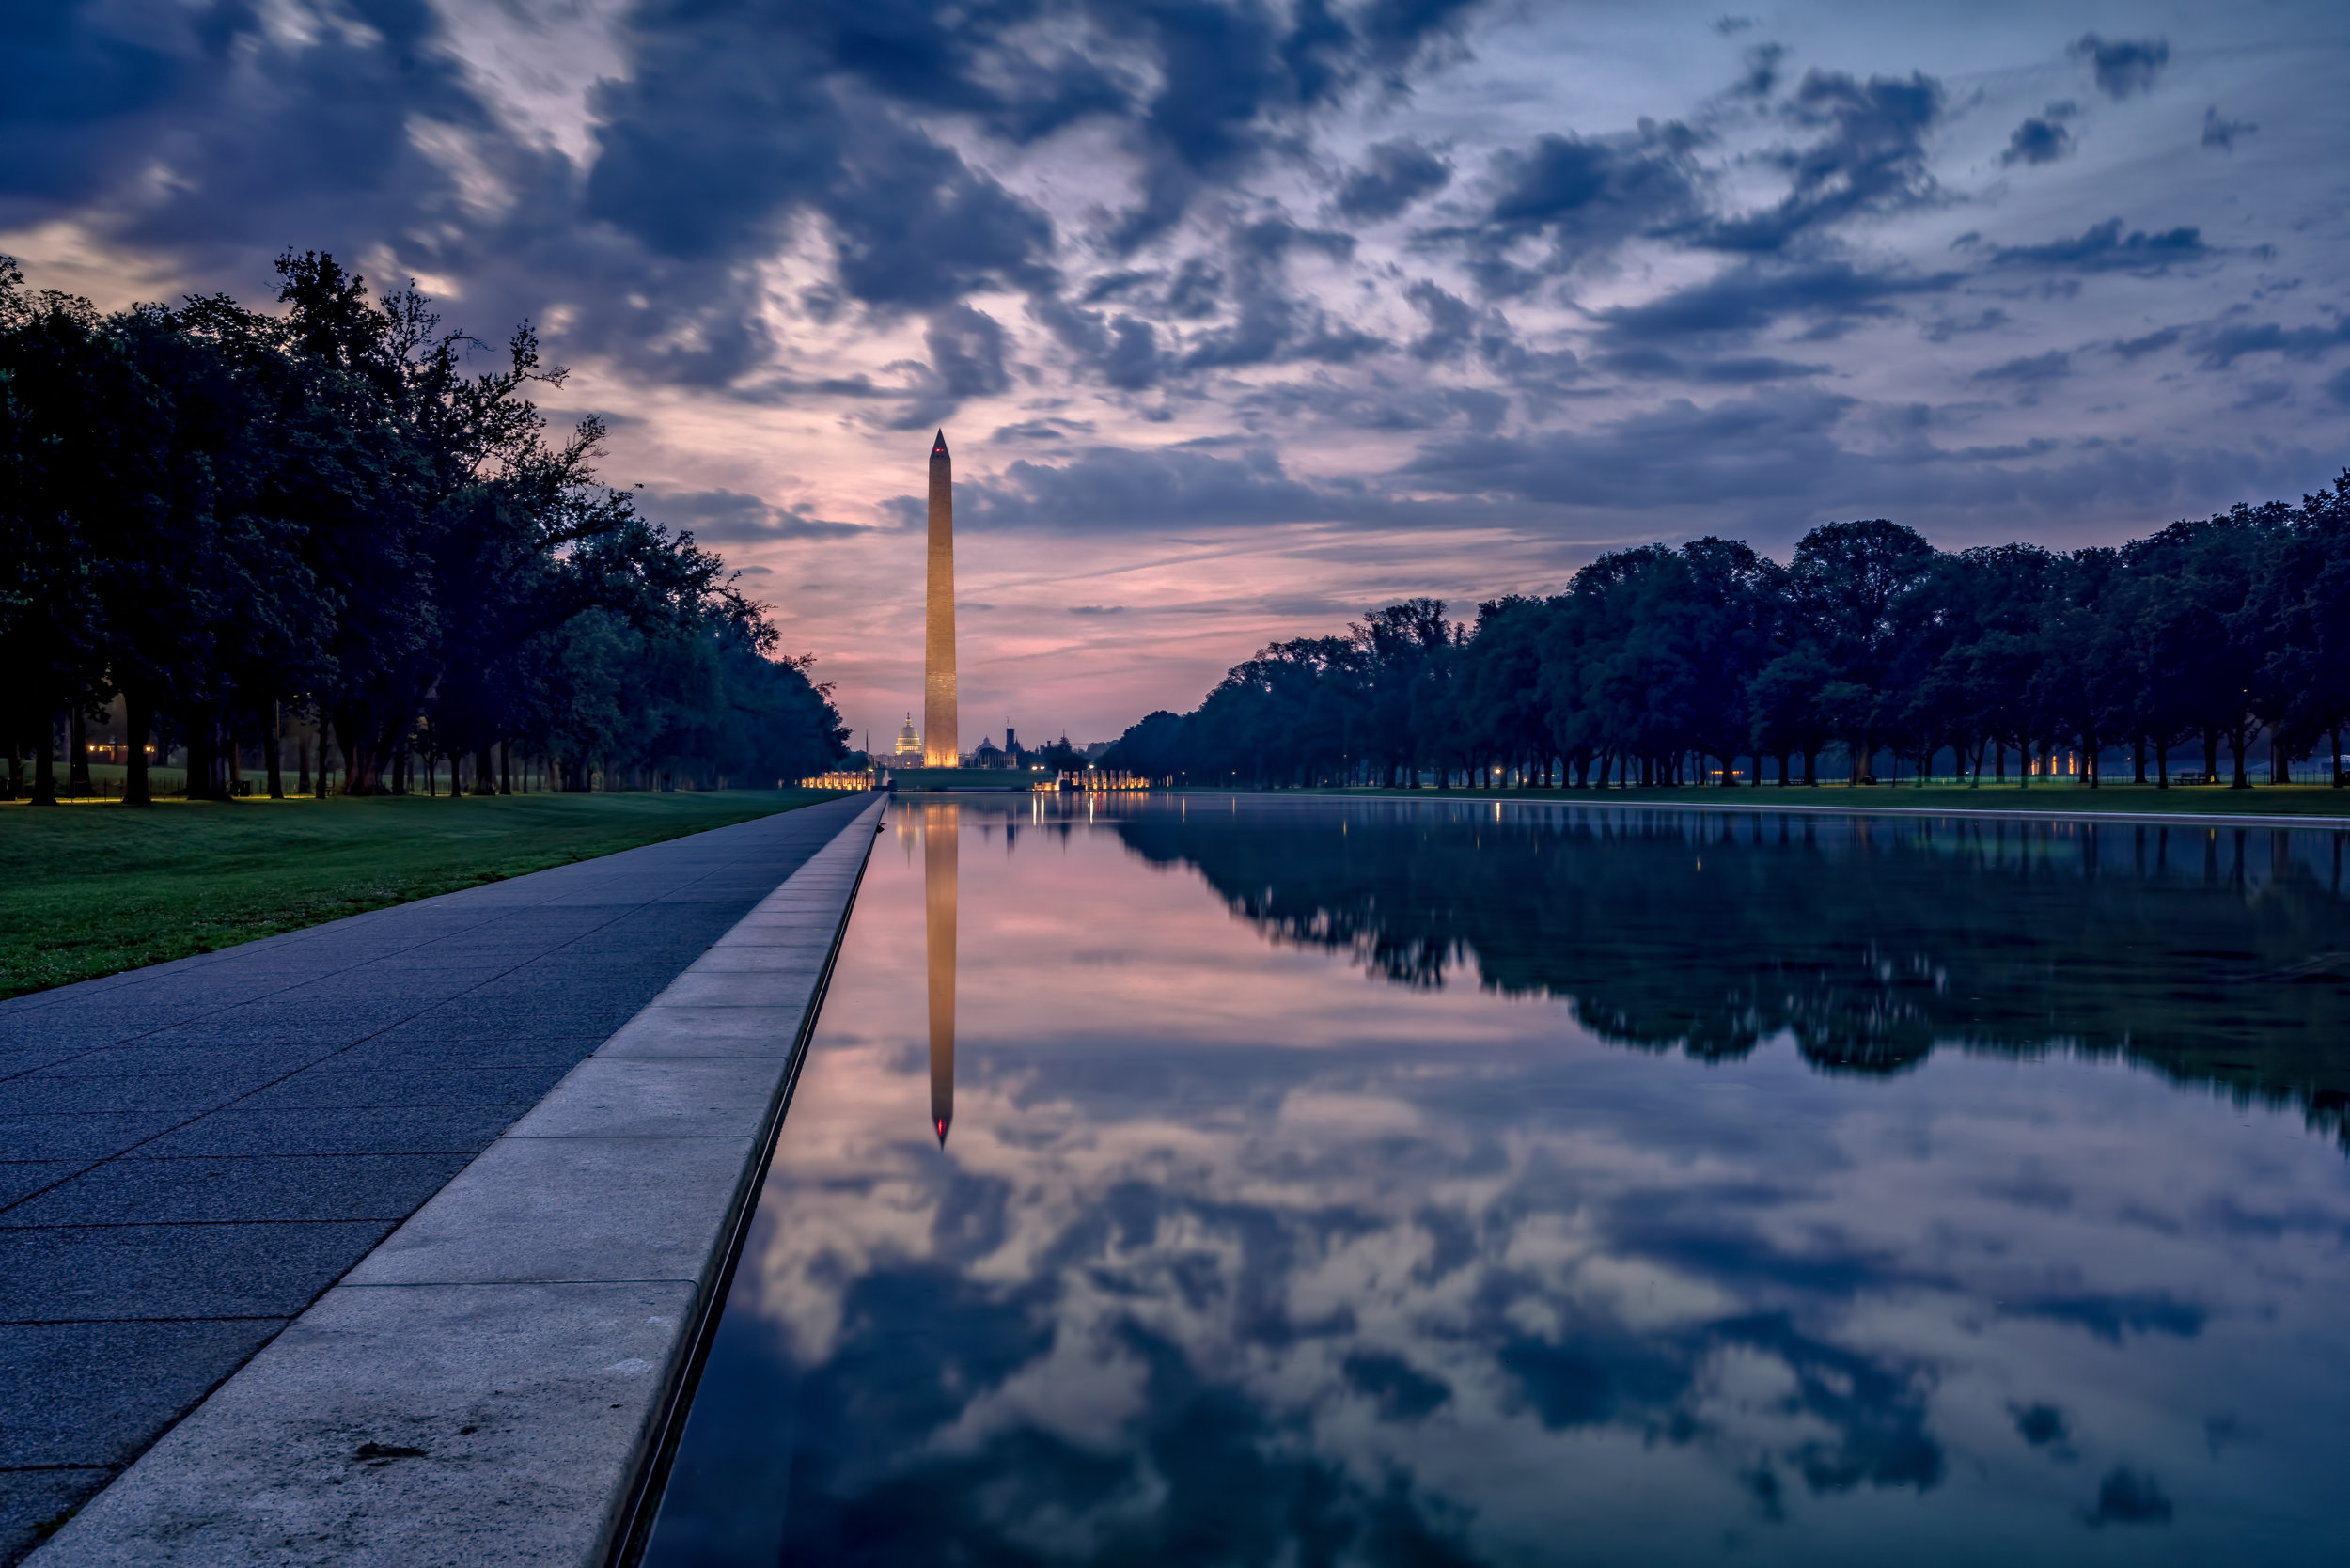 Amazing reflection, texture in the clouds, and nice pink early morning light. Around 5:20am at the Lincoln Reflecting Pool